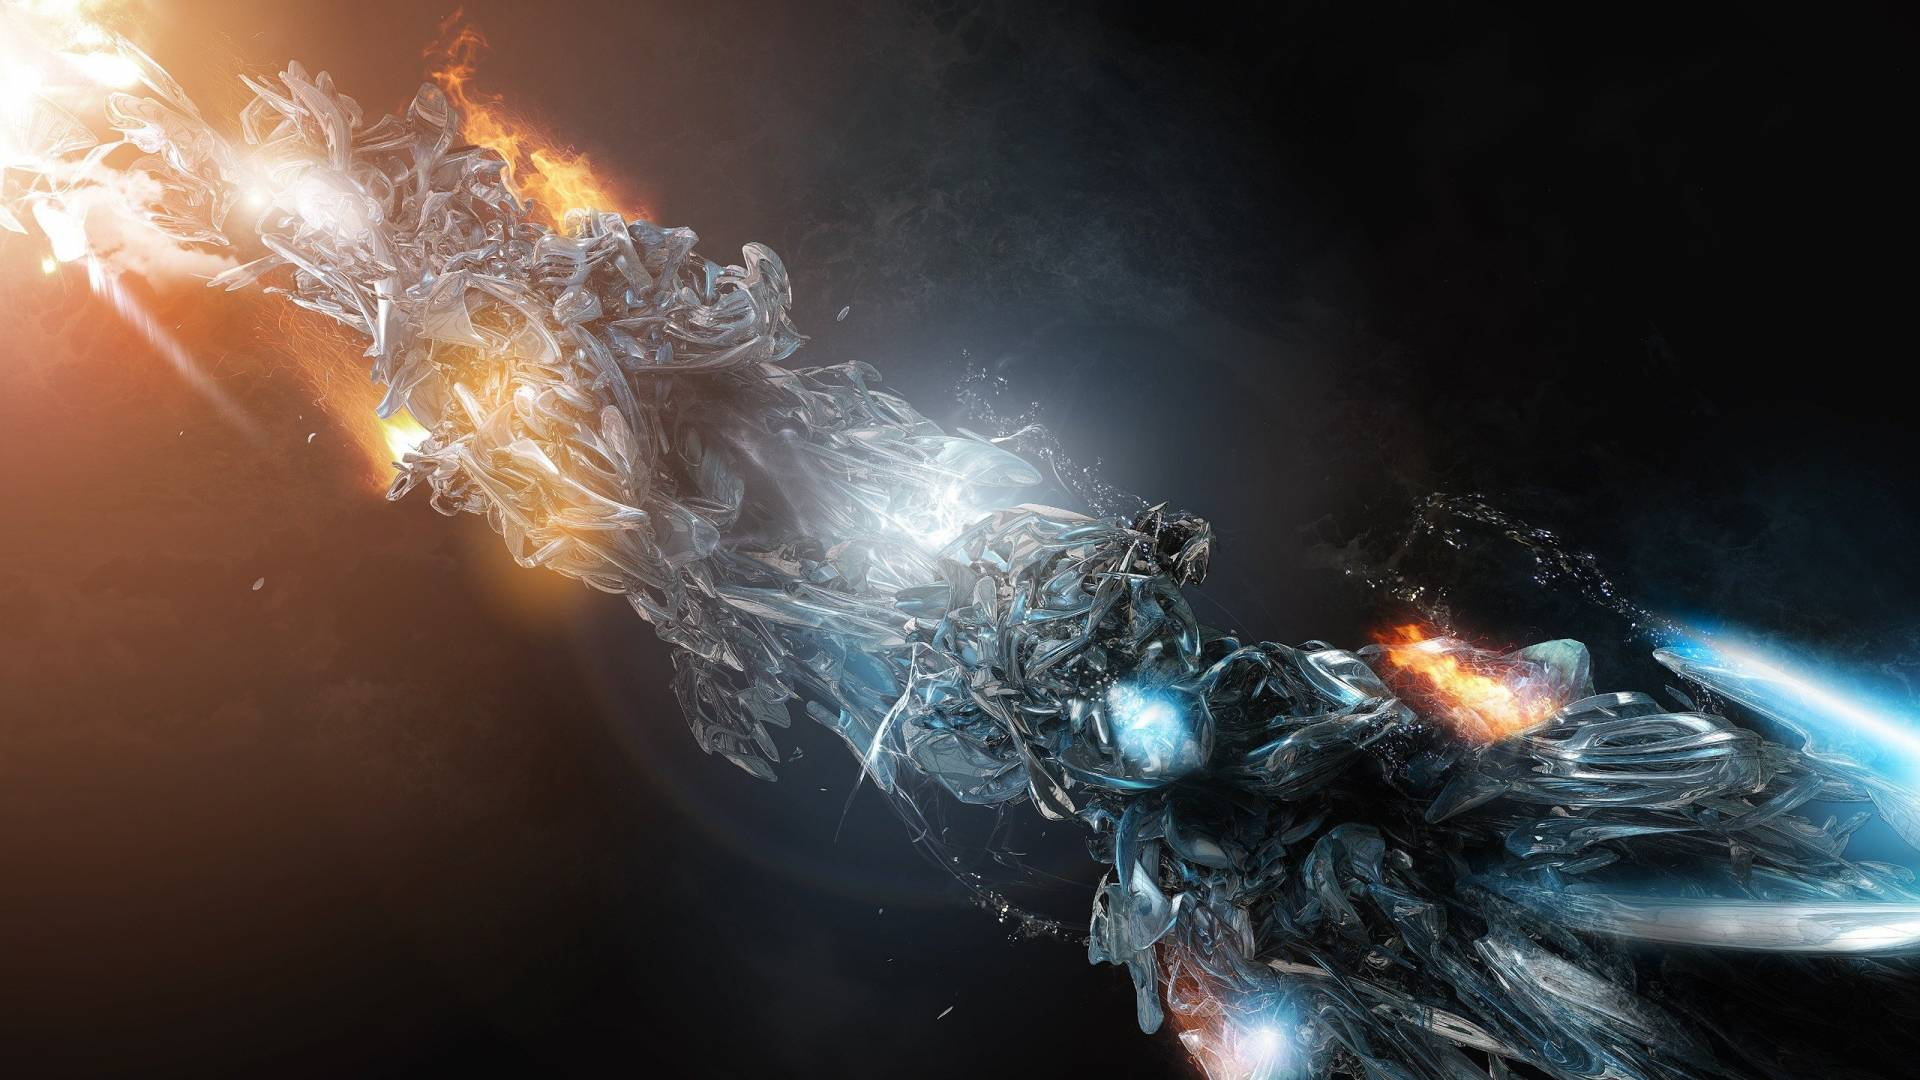 Download Cool 1920x1080 Wallpapers Gallery